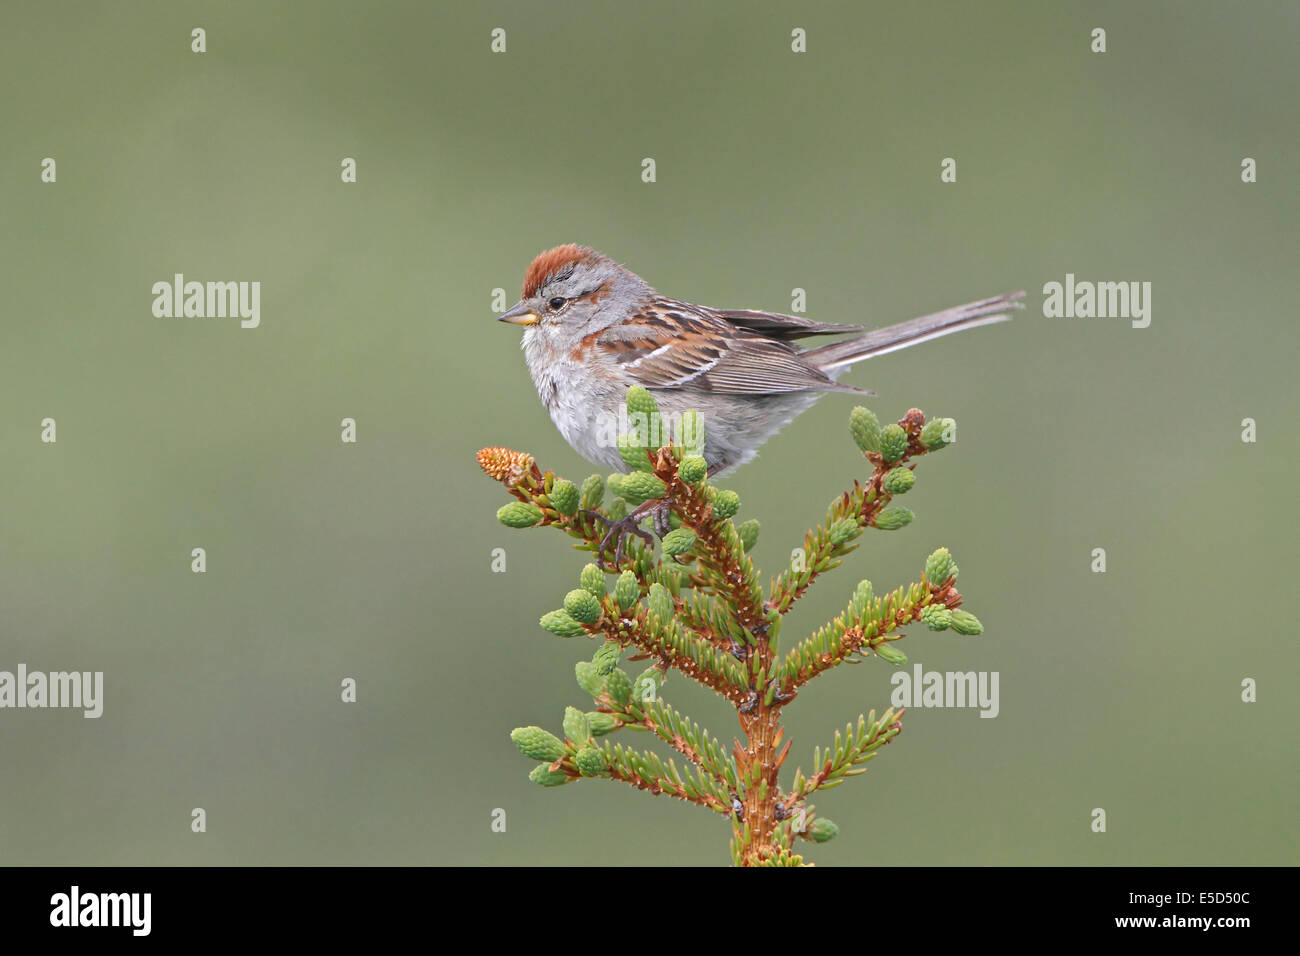 American Tree Sparrow in breeding plumage perched on top of a small conifer - Stock Image